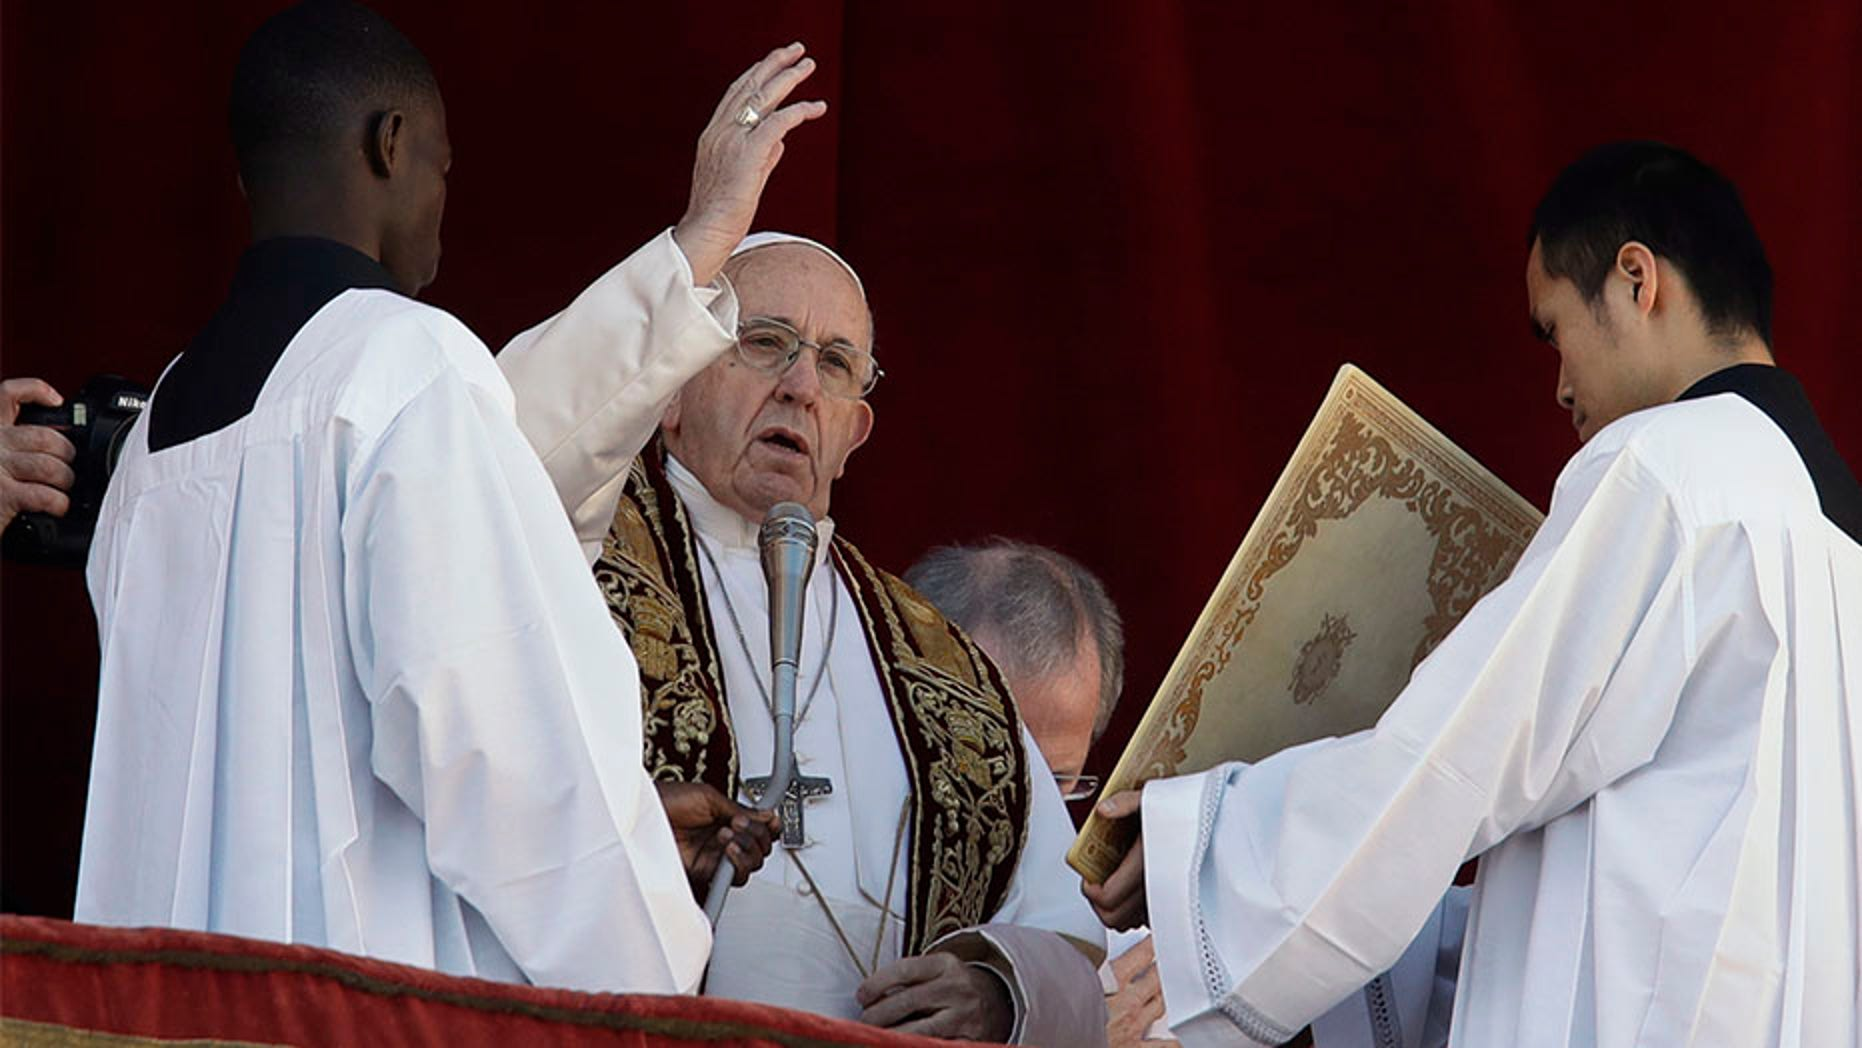 Pope Francis delivers the Christmas' day blessing from the main balcony of St. Peter's Basilica at the Vatican.